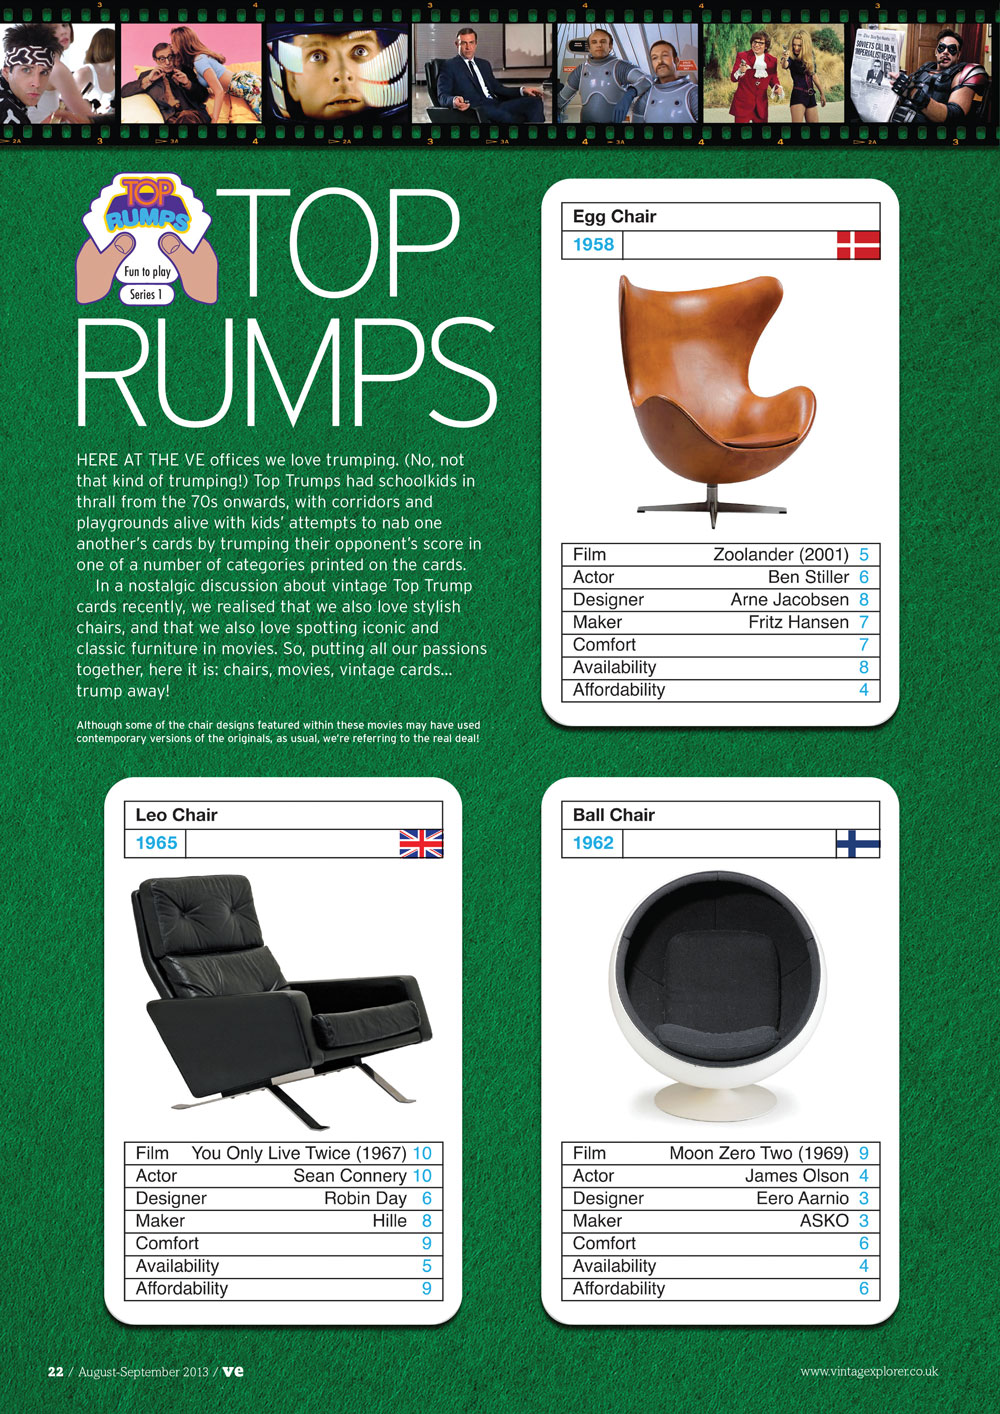 ISSUE 11 - AUG/SEPT 2013 - TOP RUMPS Here at the VE offices we love trumping. (No, not that kind of trumping!) Top Trumps had schoolkids in thrall from the 70s onwards, with corridors and playgrounds alive with kids' attempts to nab one another's cards by trumping their opponent's score in one of a number of categories printed on the cards.